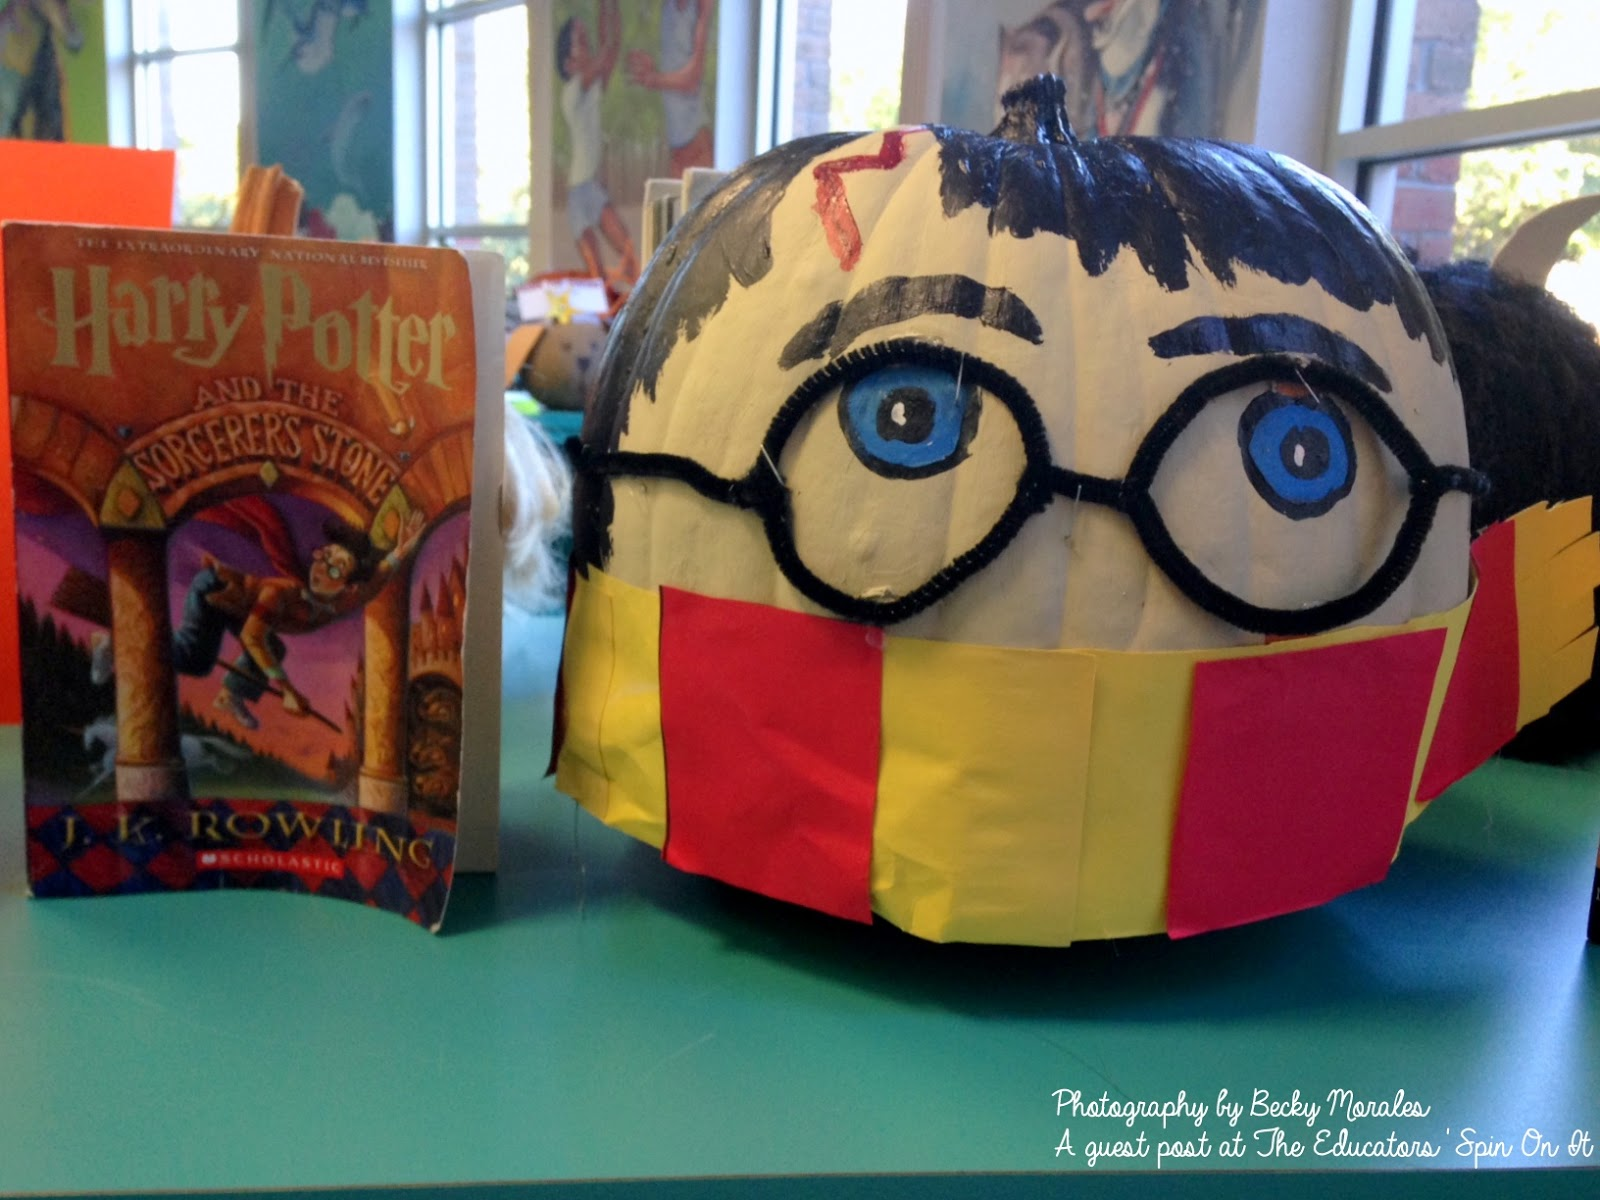 Directions on how to make the Harry Potter and the Sorcerer's Stone (Book 1) Inspired Pumpkin Character: